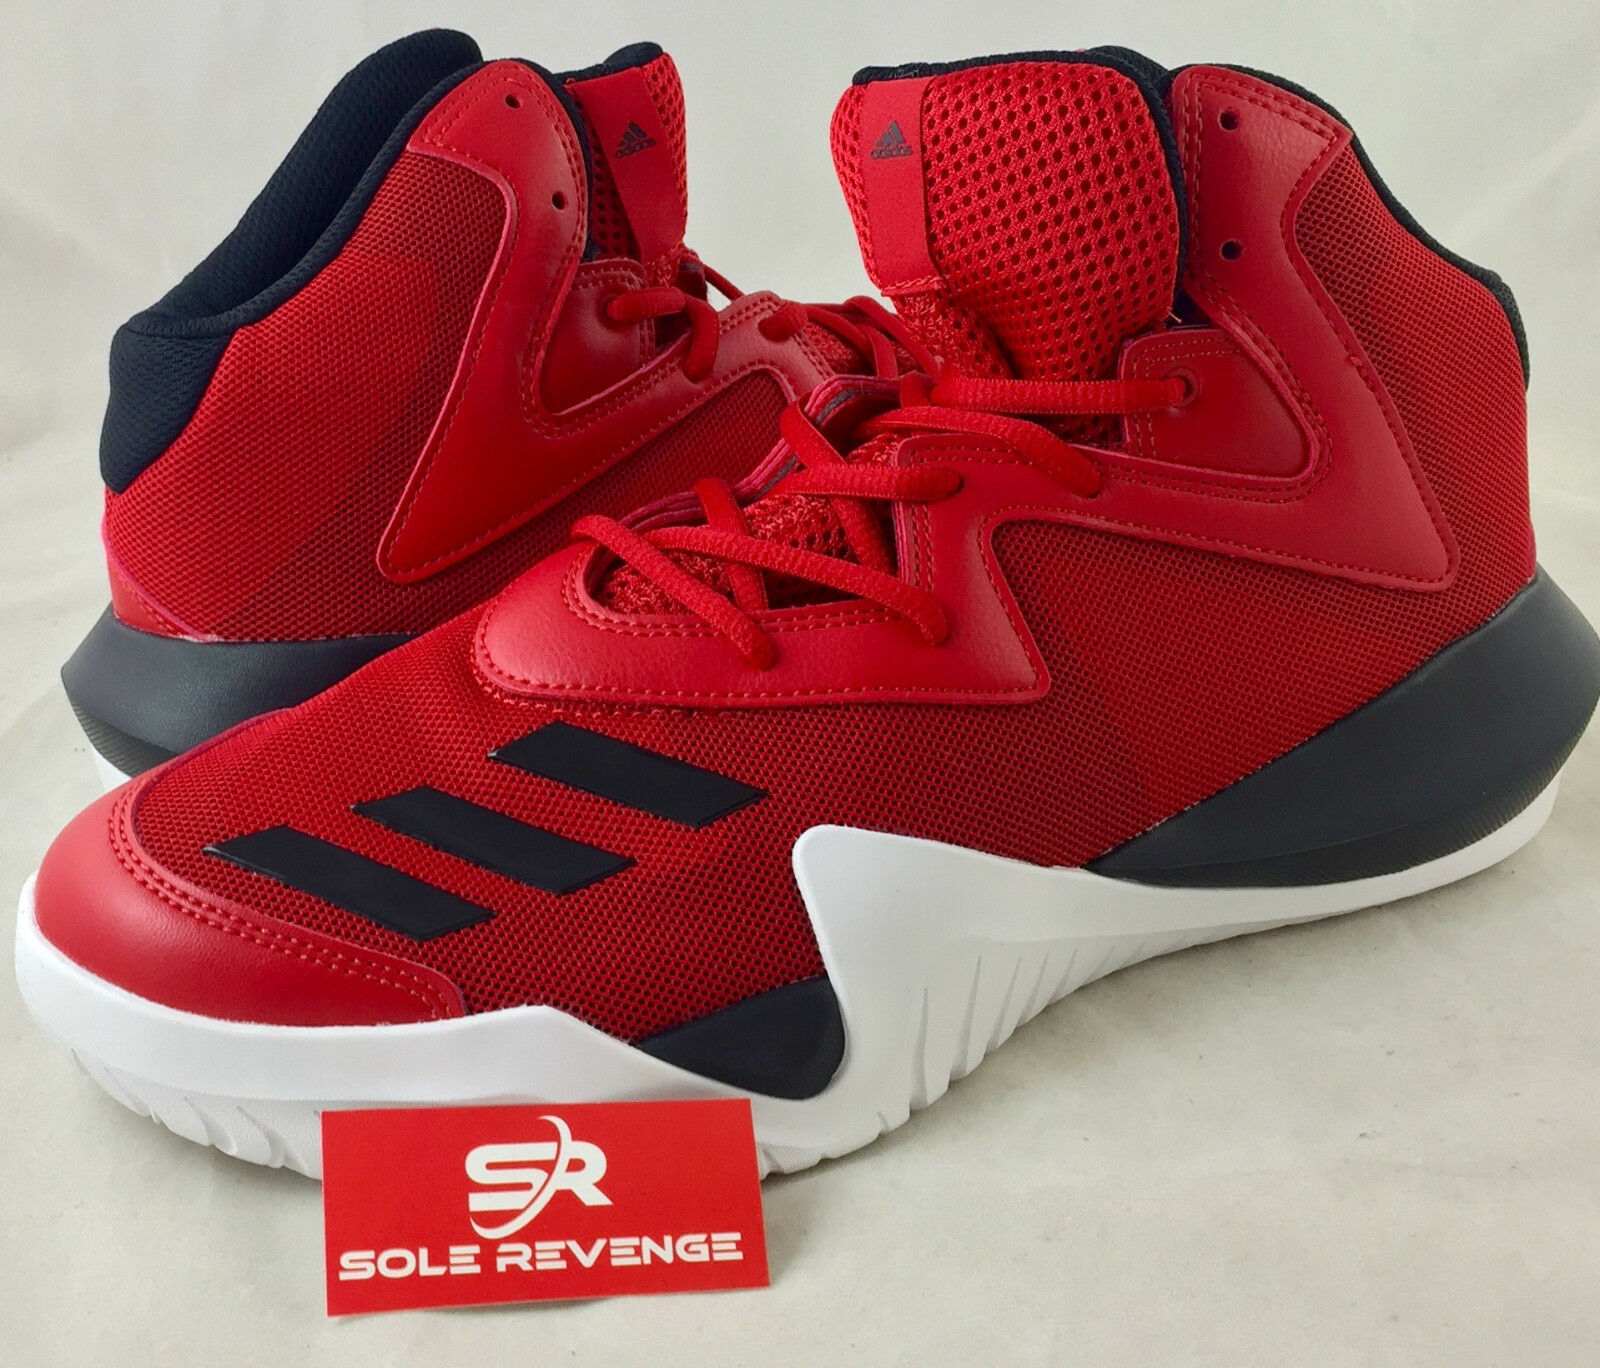 11.5 NEW! adidas CRAZY TEAM 2017 Basketball Shoes Red Red Red Black White Mens B49400 dcb29c